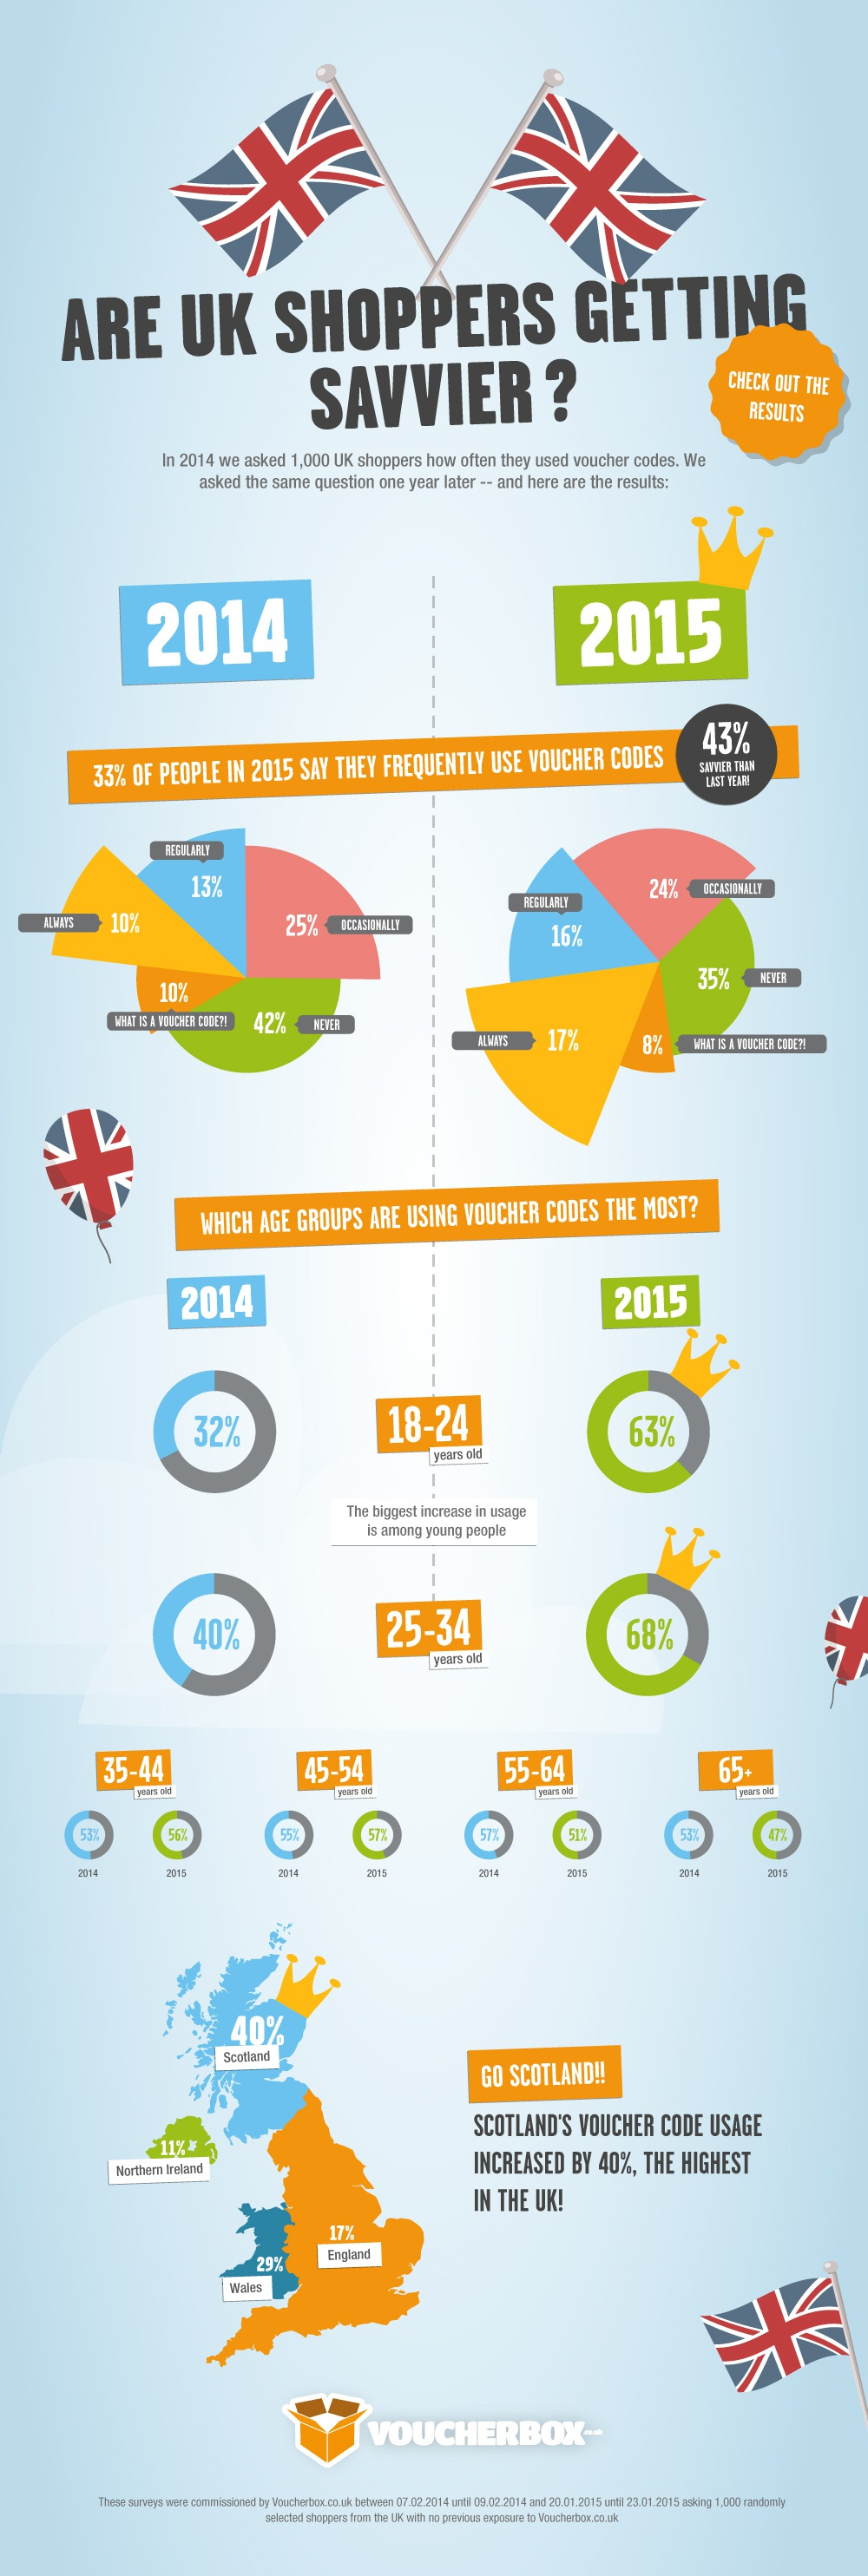 voucherbox voucher usage infographic Are UK Shoppers getting Savvier?